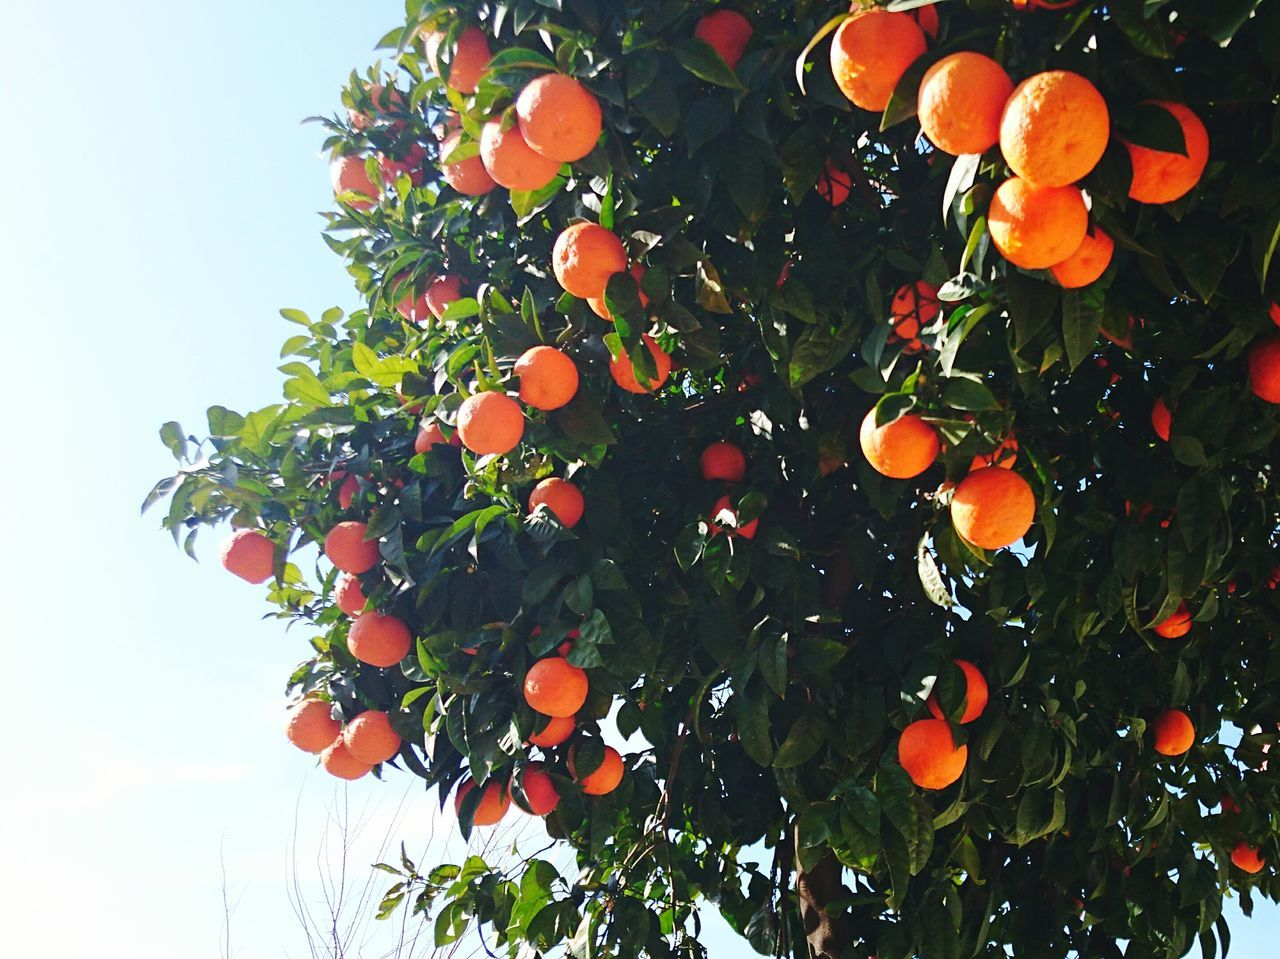 fruit, orange - fruit, orange tree, orange color, growth, tree, freshness, low angle view, outdoors, citrus fruit, leaf, food and drink, day, no people, beauty in nature, nature, food, healthy eating, green color, branch, sky, close-up